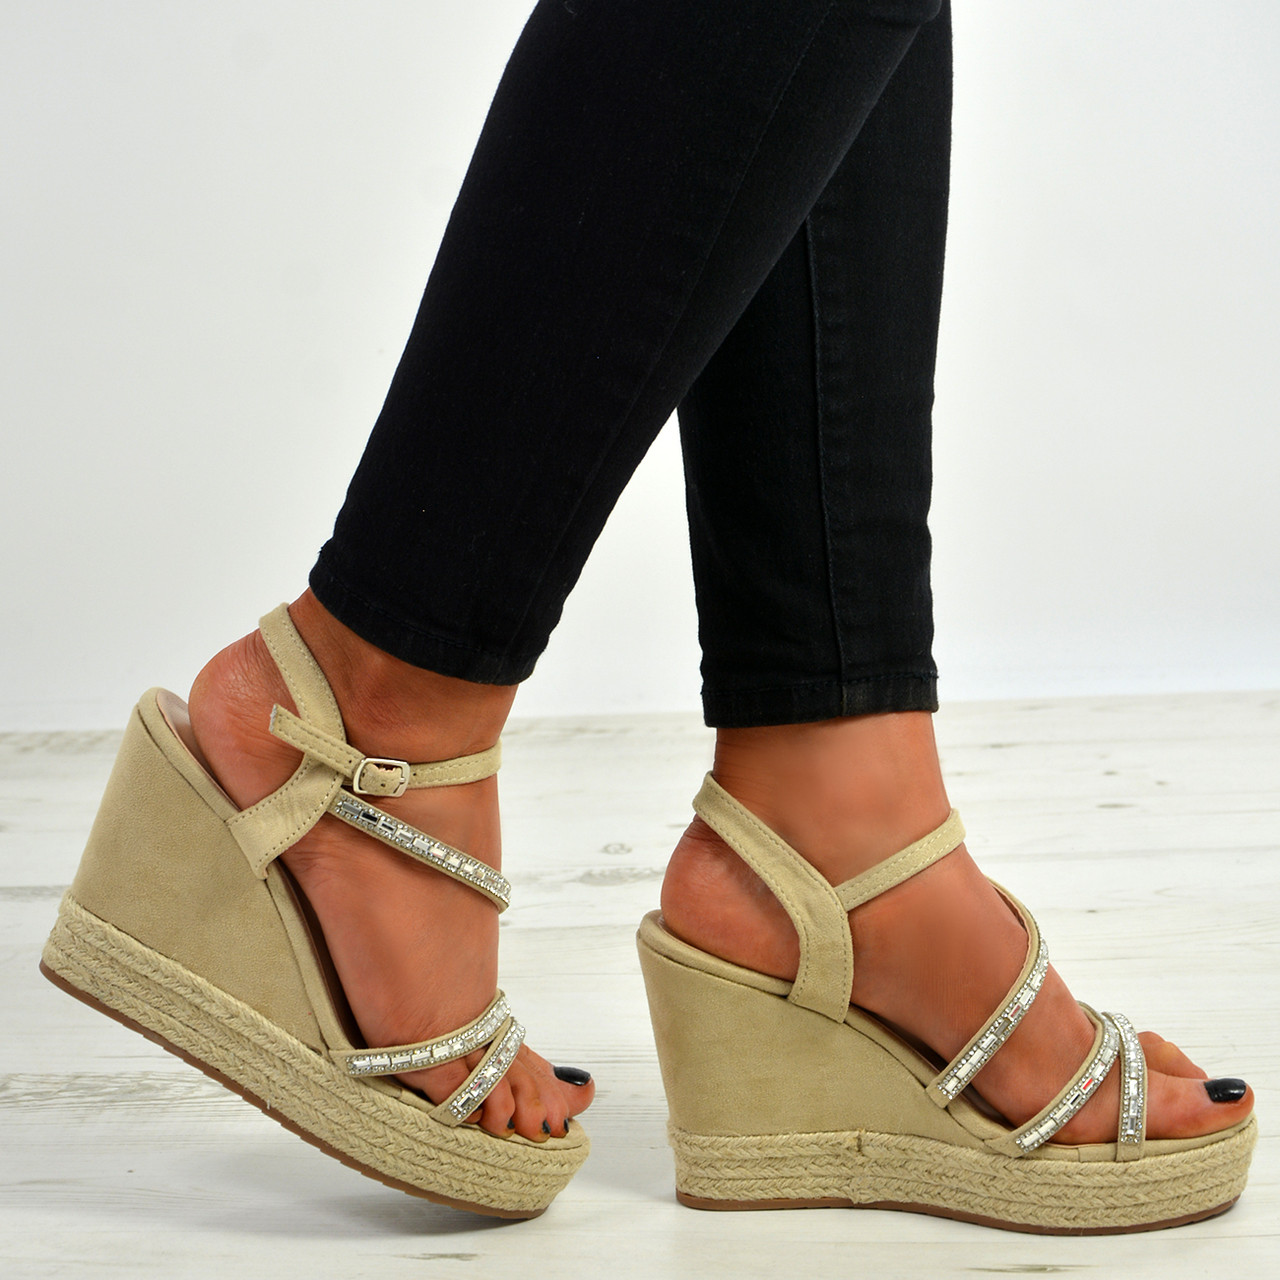 b9bd0f7606e353 New Womens Ladies Ankle Strap Studded Espadrille Wedge Platform Sandals  Shoes